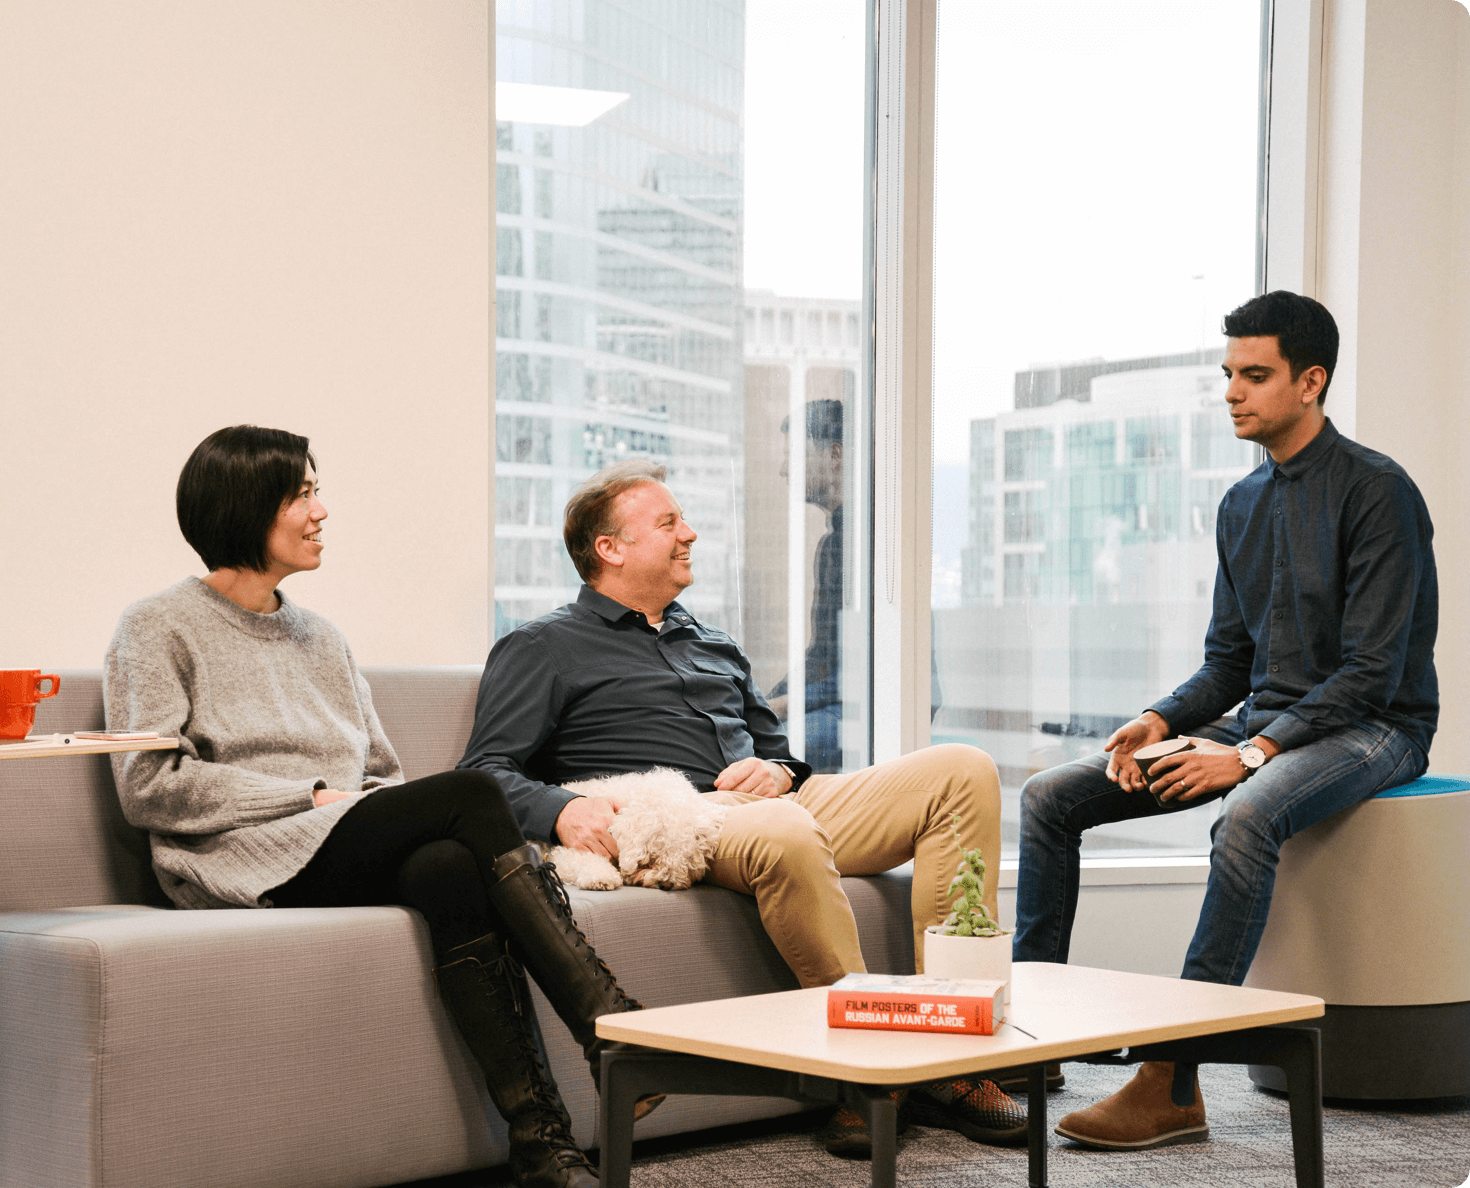 Picture of three people casually having a conversation on a couch